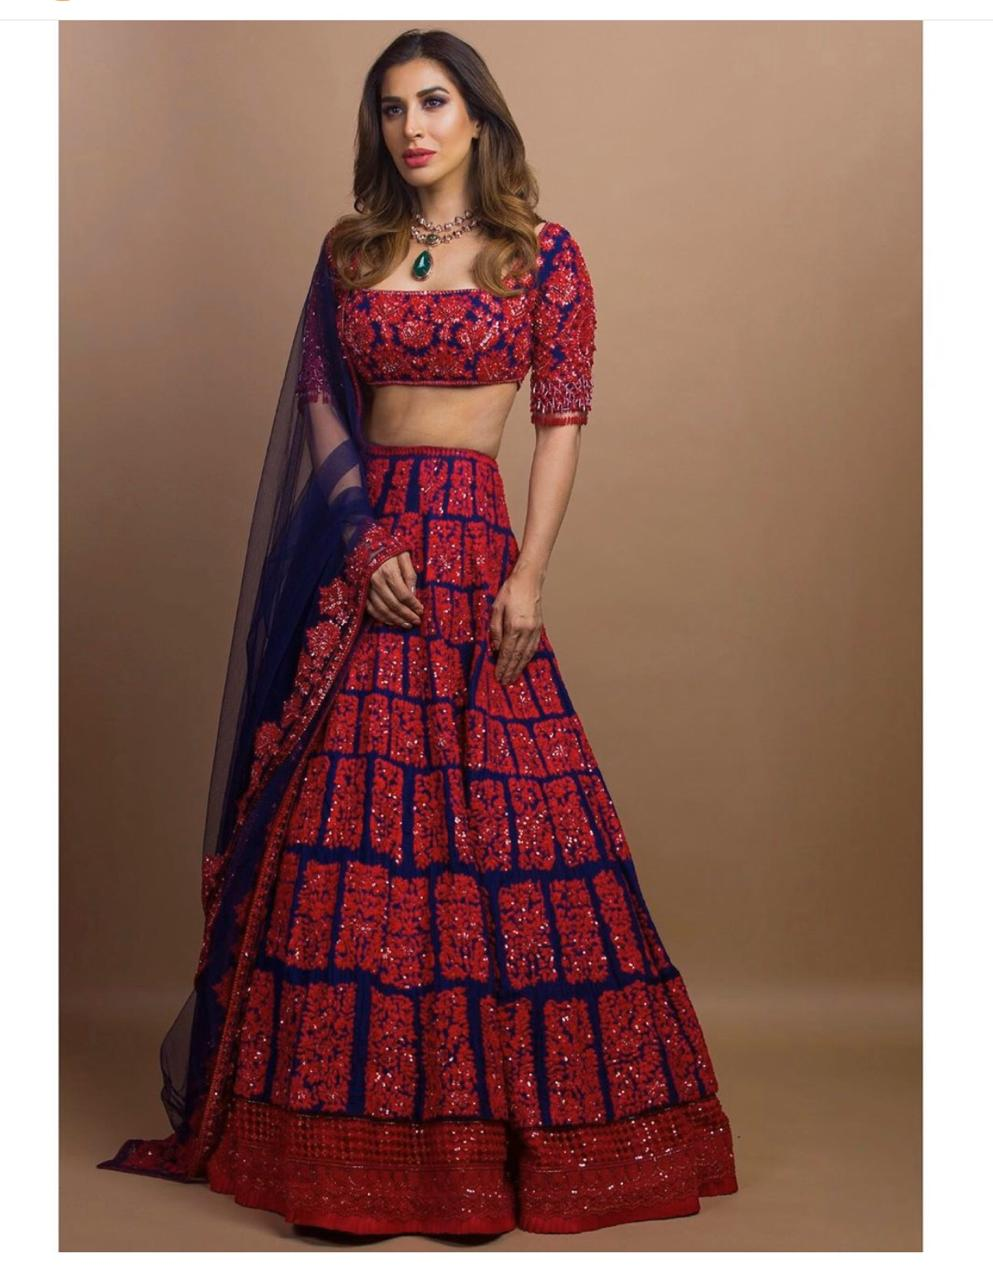 Sophie Choudry Blue Embroidered Party Lehenga Blouse Shopping India